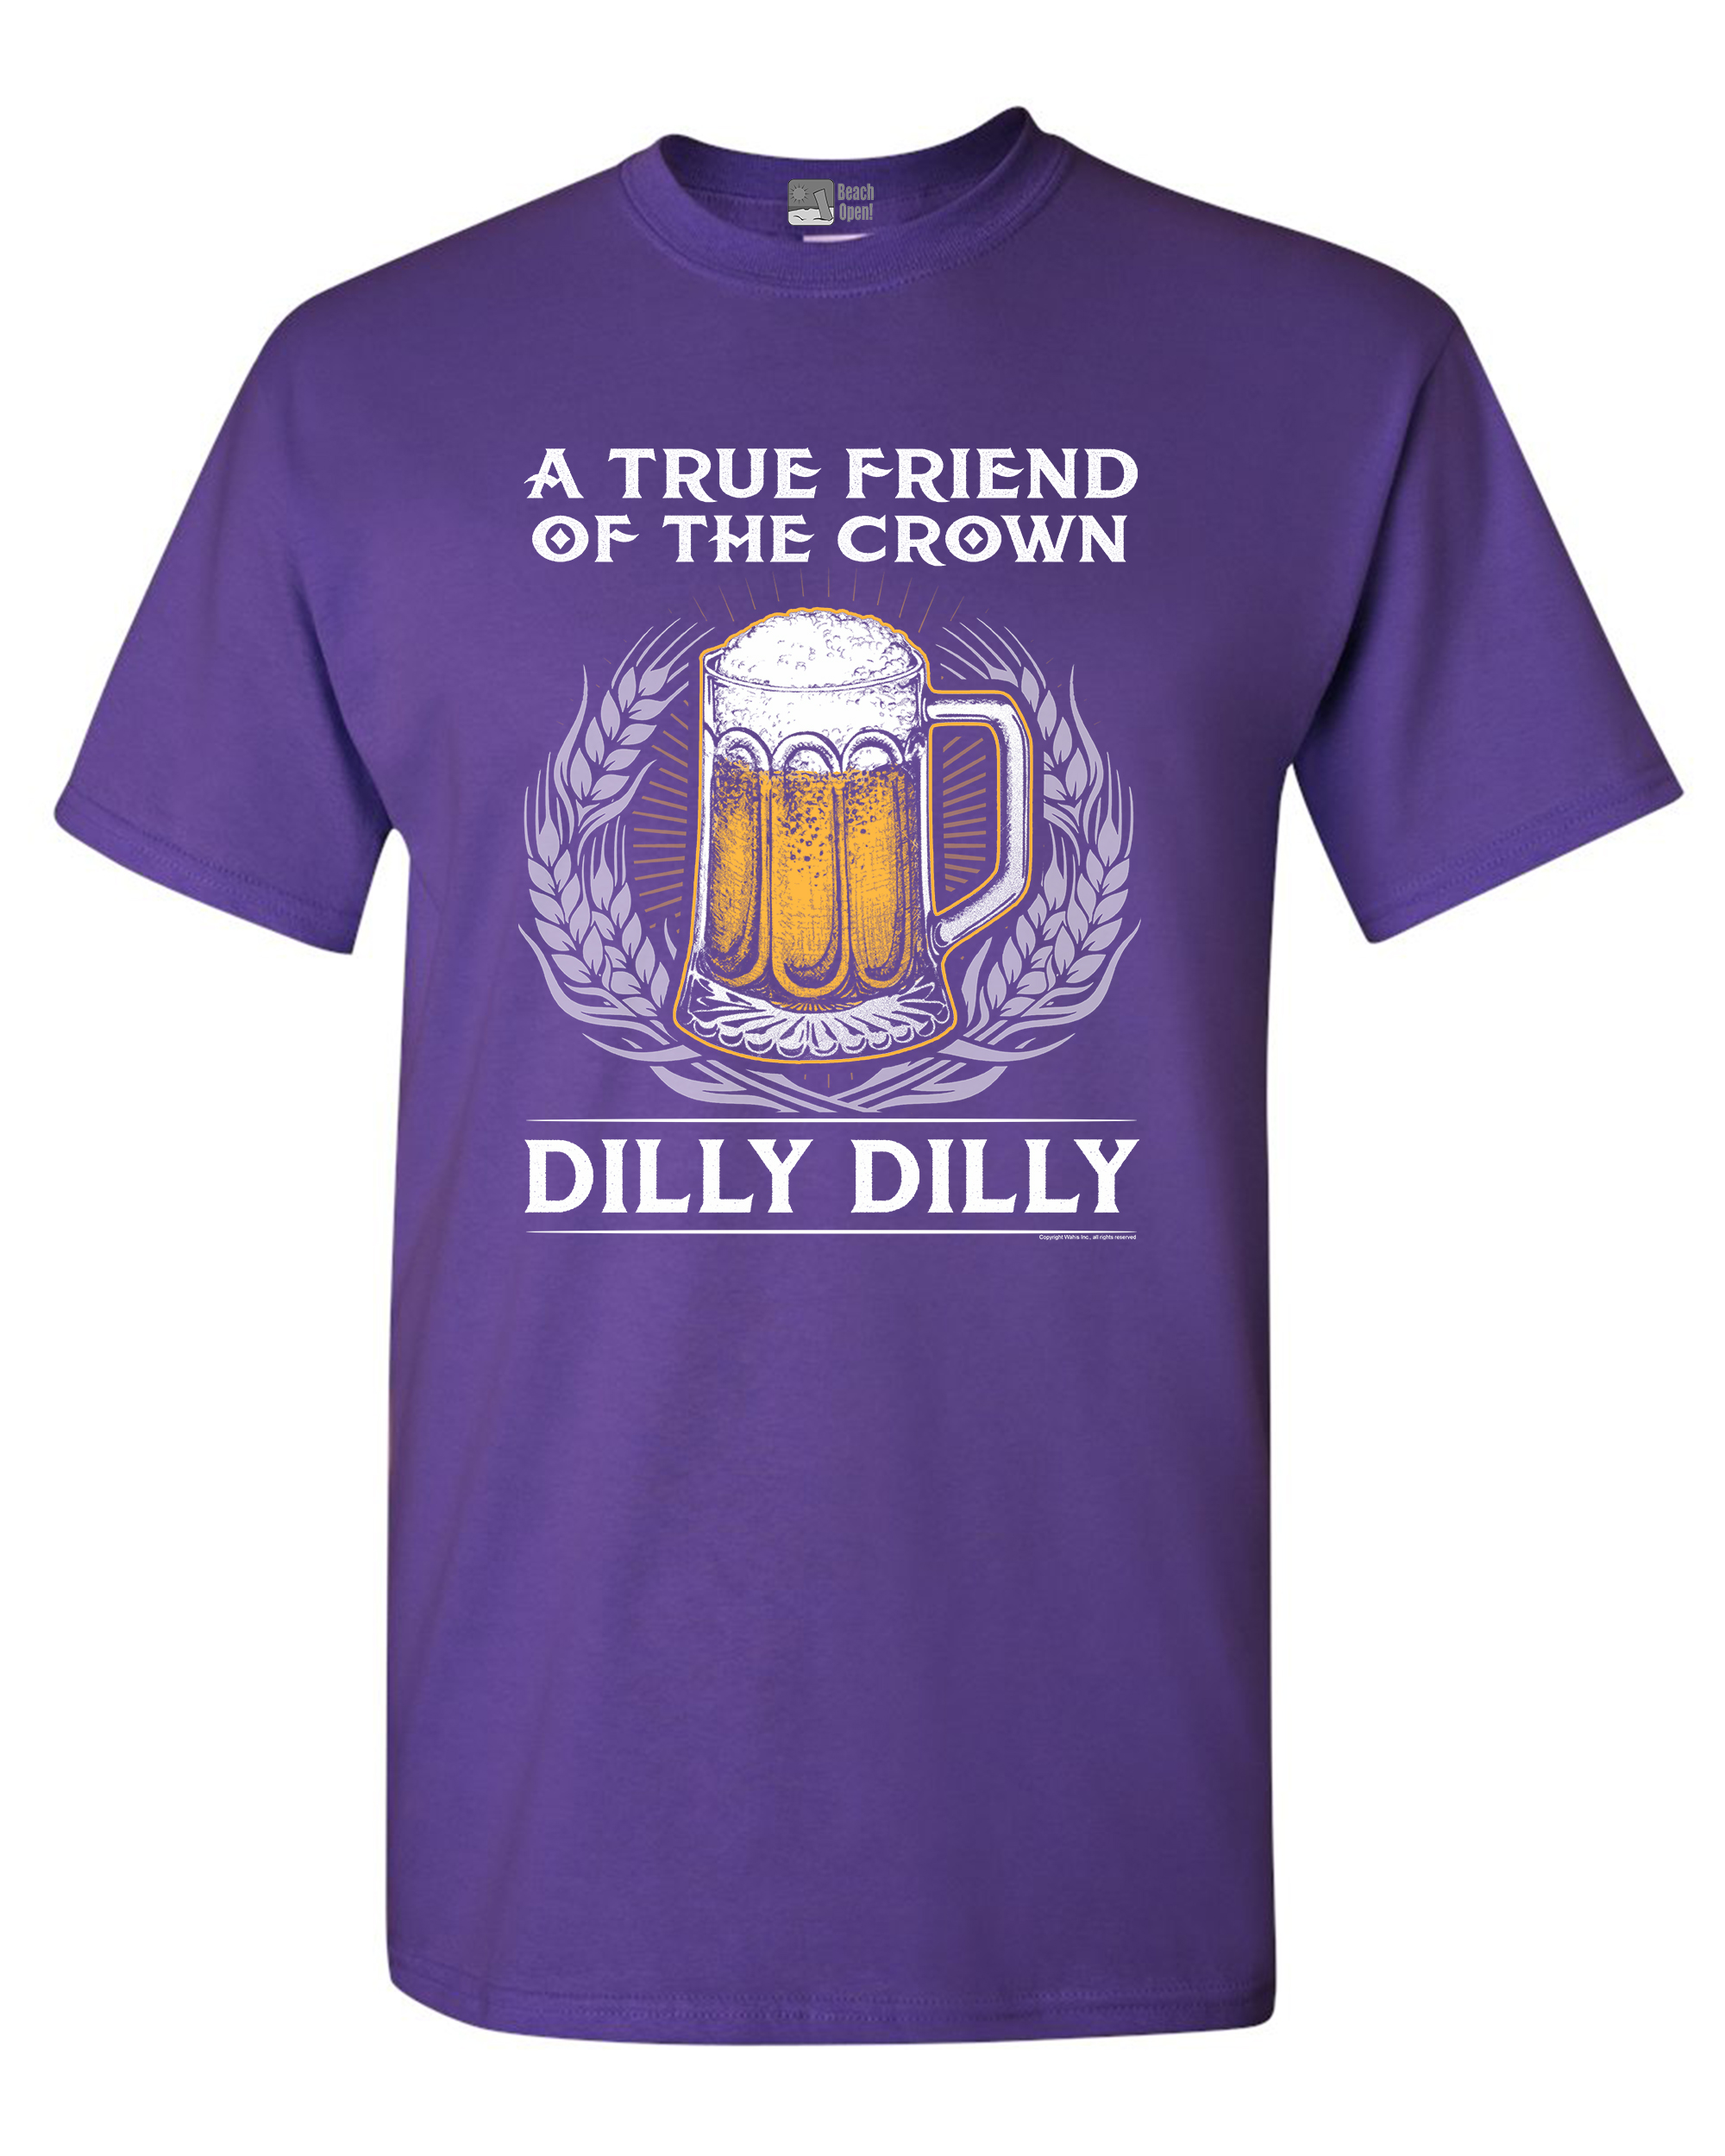 A True Friend Of The Crown Dilly Dilly Beer Funny Adult DT T-Shirt Tee